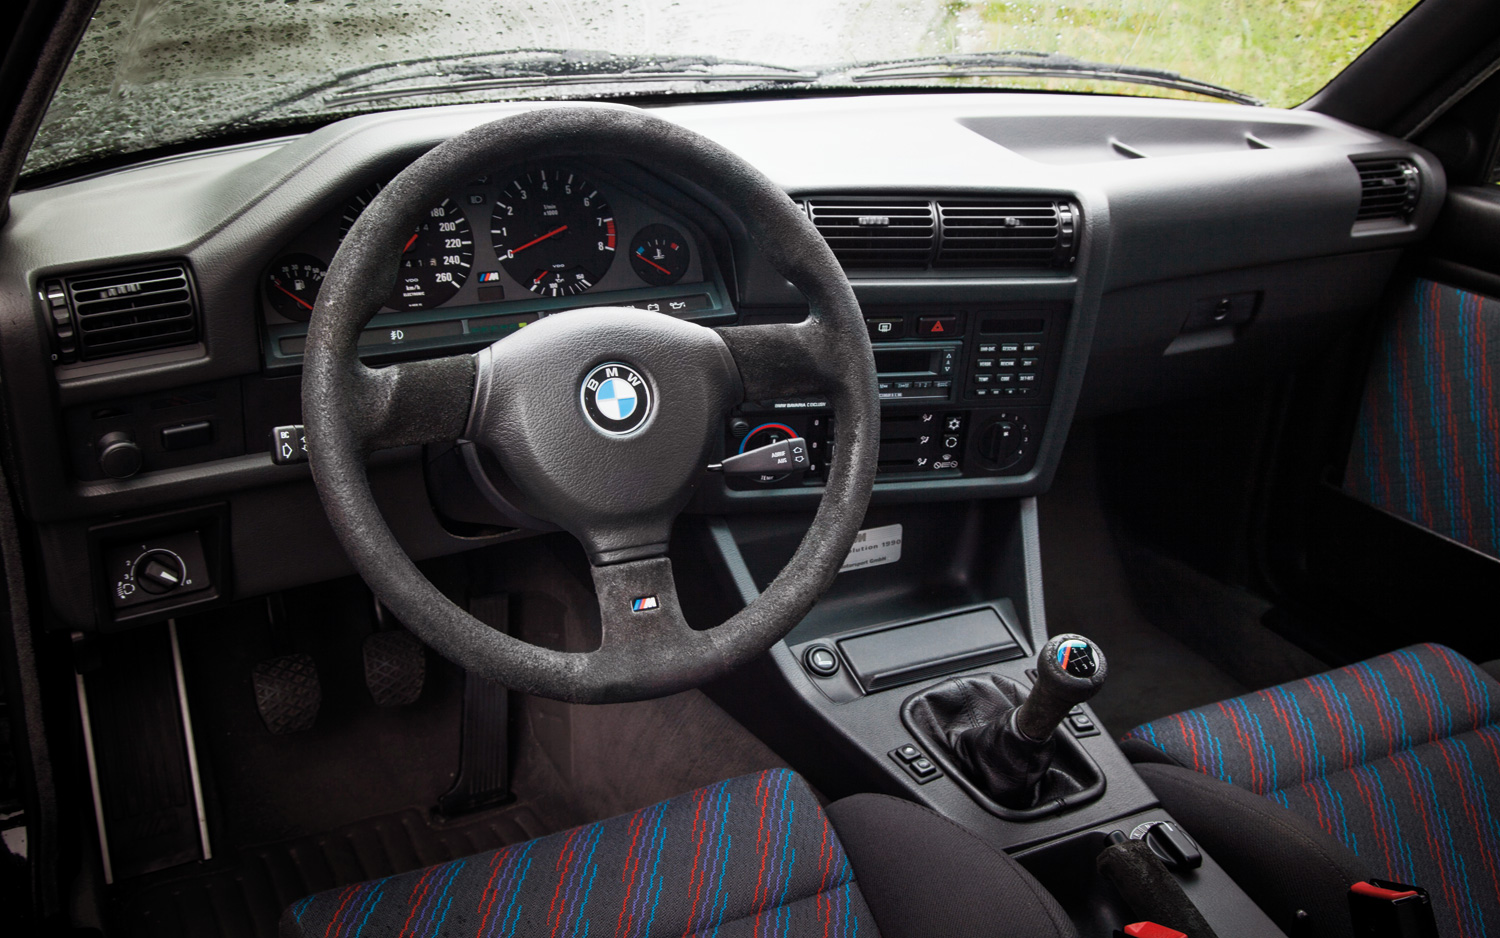 bmw e36 s50 wiring diagram caravan towing socket e46 m3 engine swap free image for user